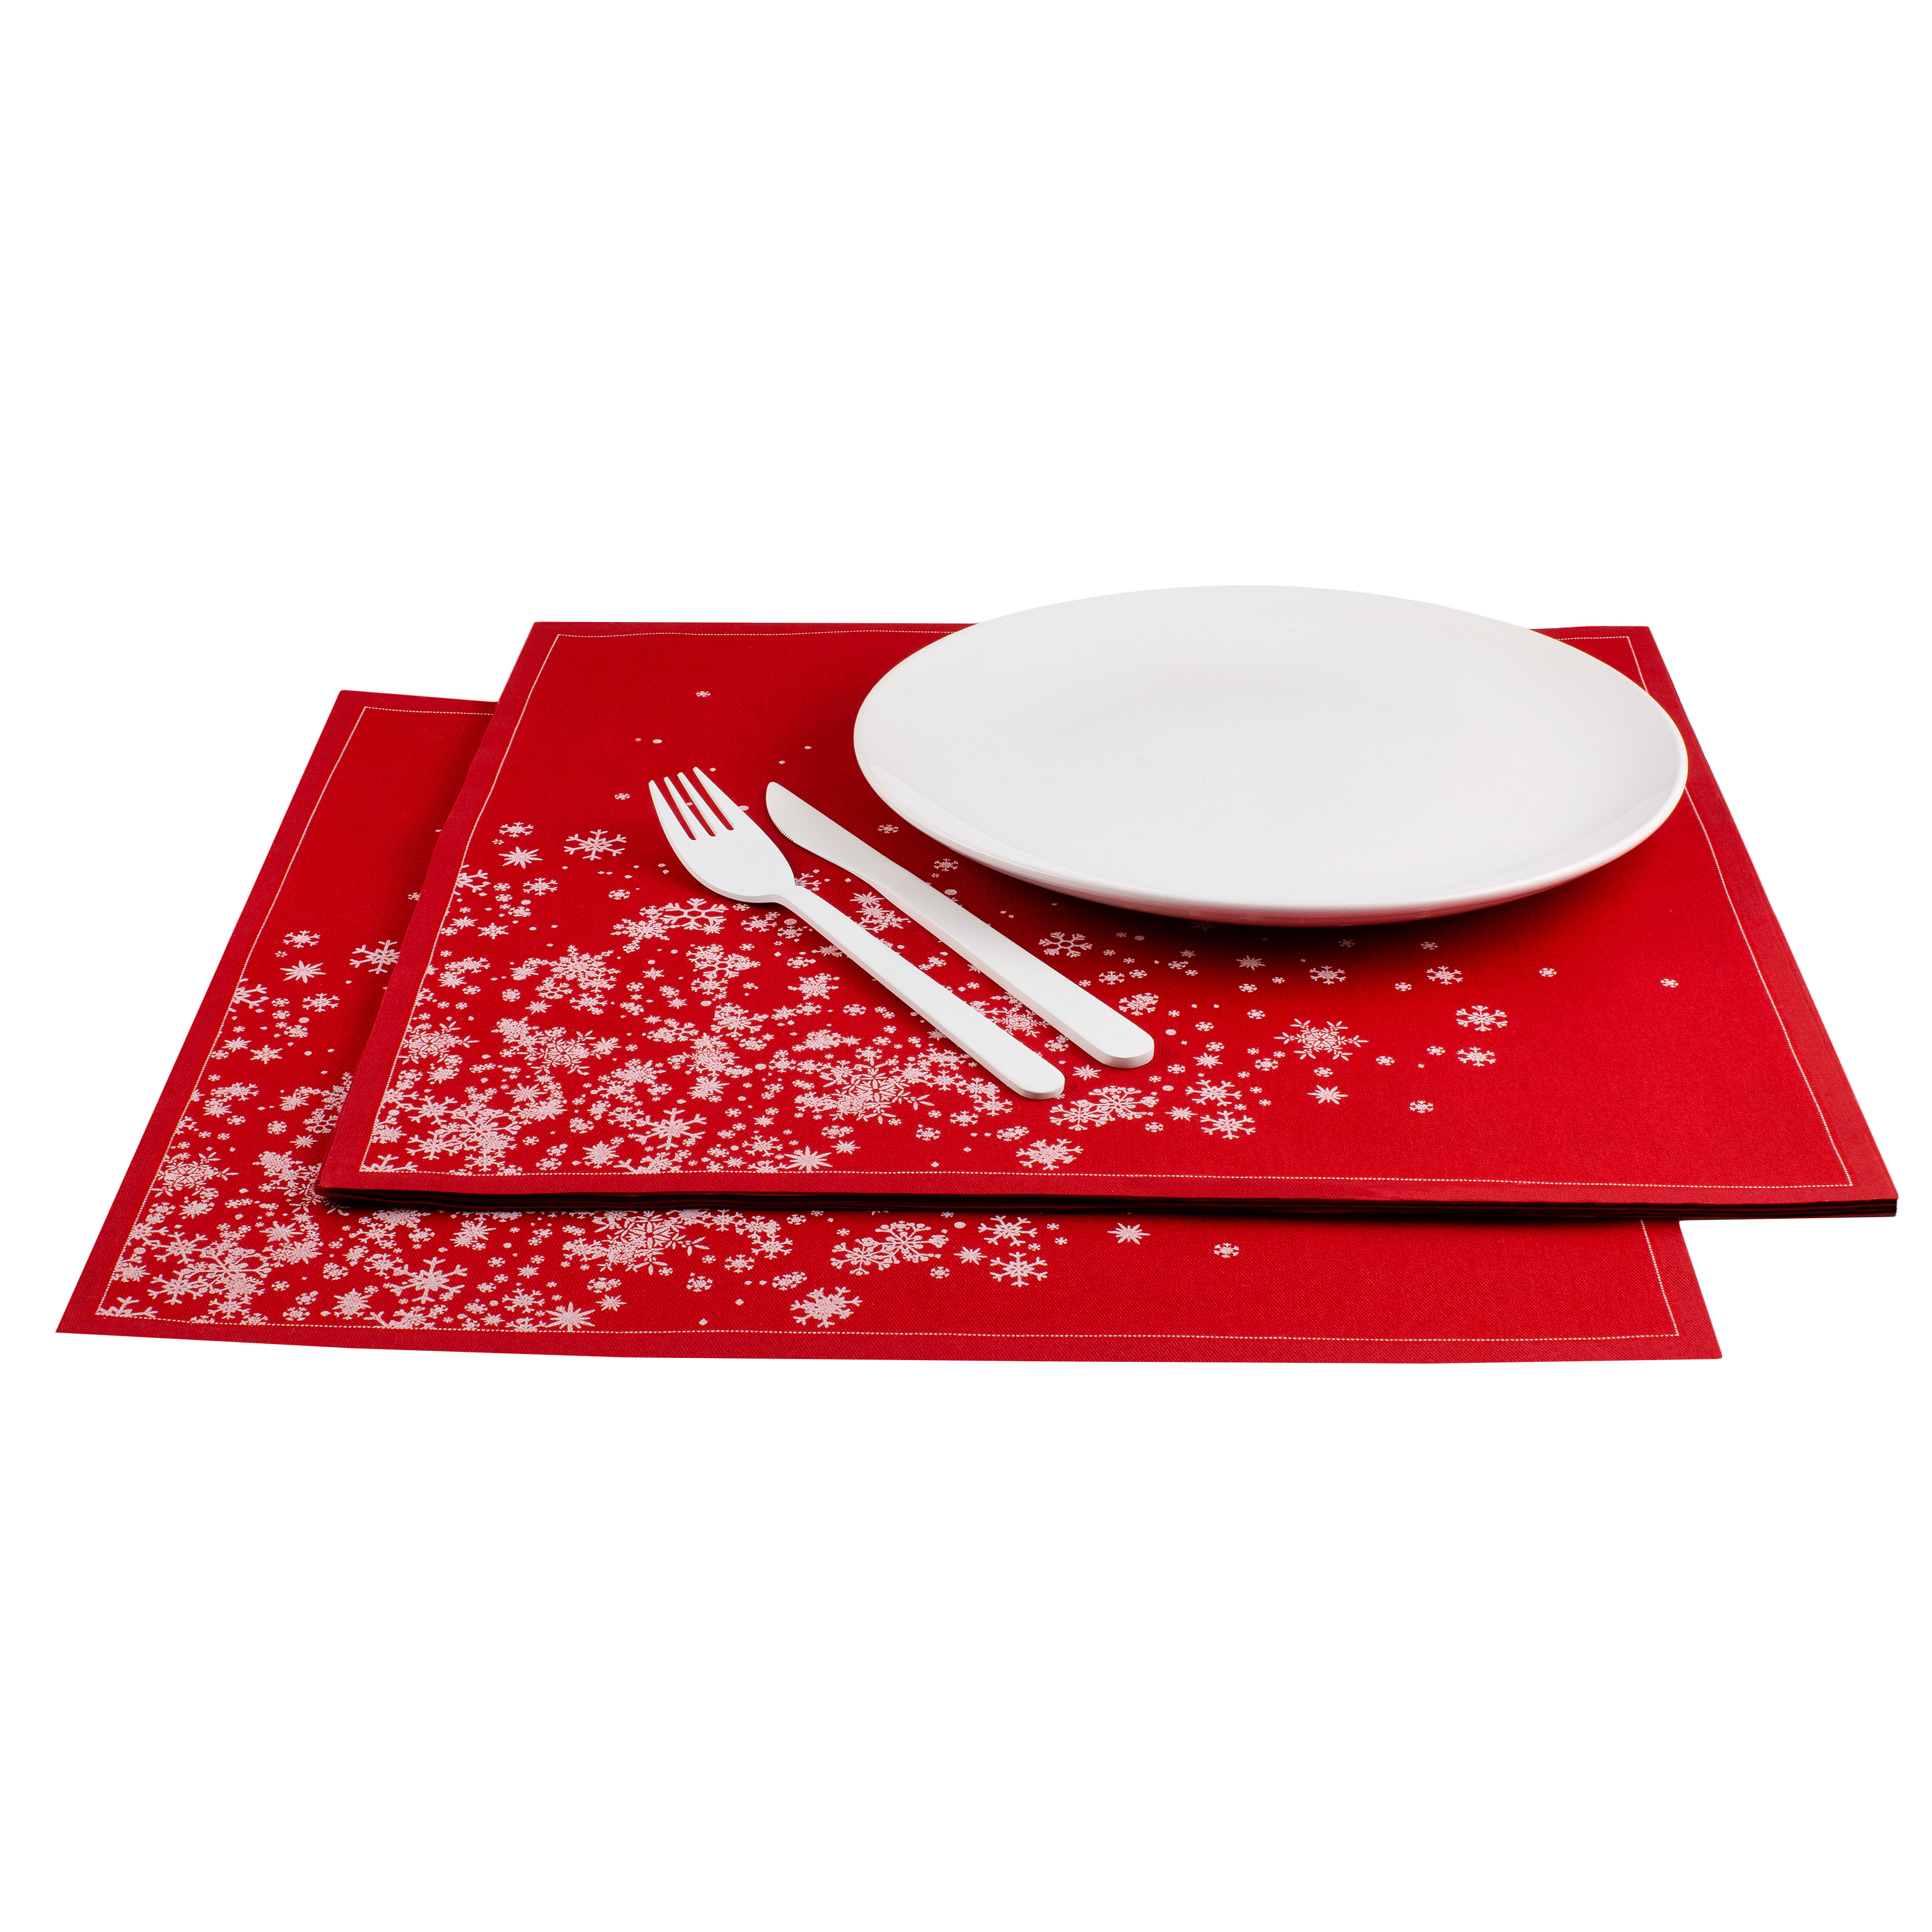 "Snowflake Cascade Red Cotton Placemat - 18.9"" x 12.6"" - 120 Units"